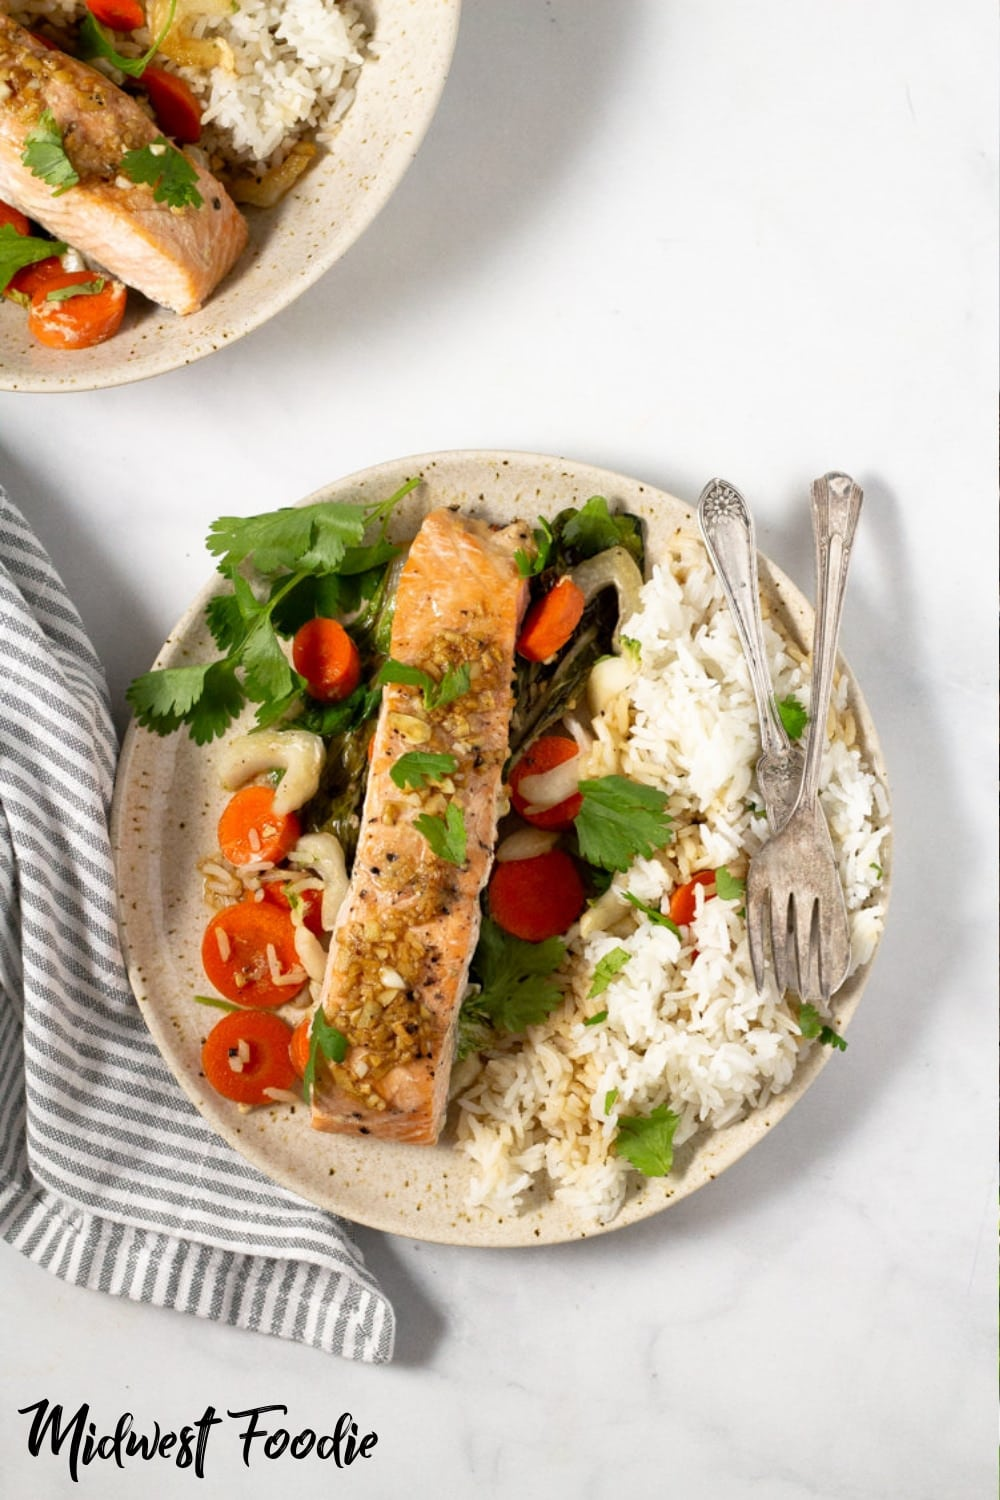 Garlic & Ginger Baked Salmon | Midwest Foodie | Sealed parhcment packets ensure the fish cooks up moist and tender right along with your favorite veggies. And clean up is a breeze! #healthy #cleaneating #simple #easy #recipe #mealprep #fish #baked